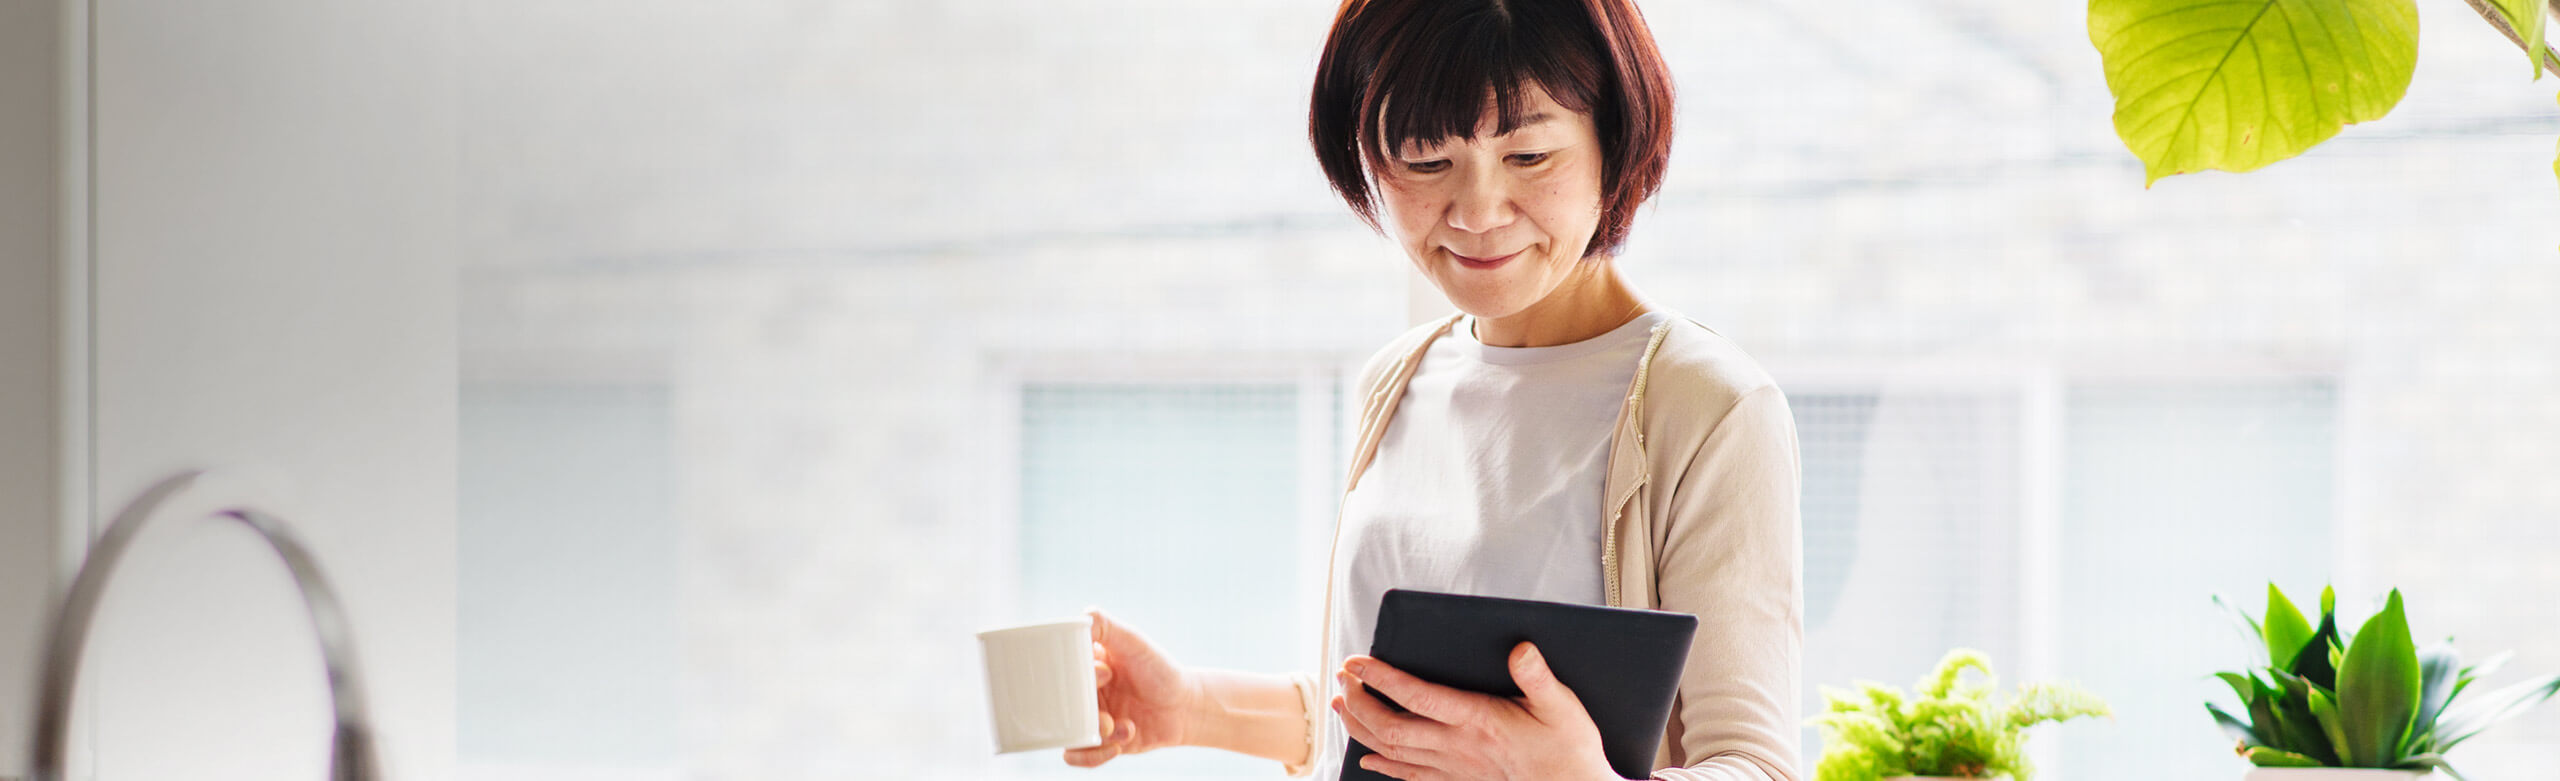 Woman holding coffee mug and tablet